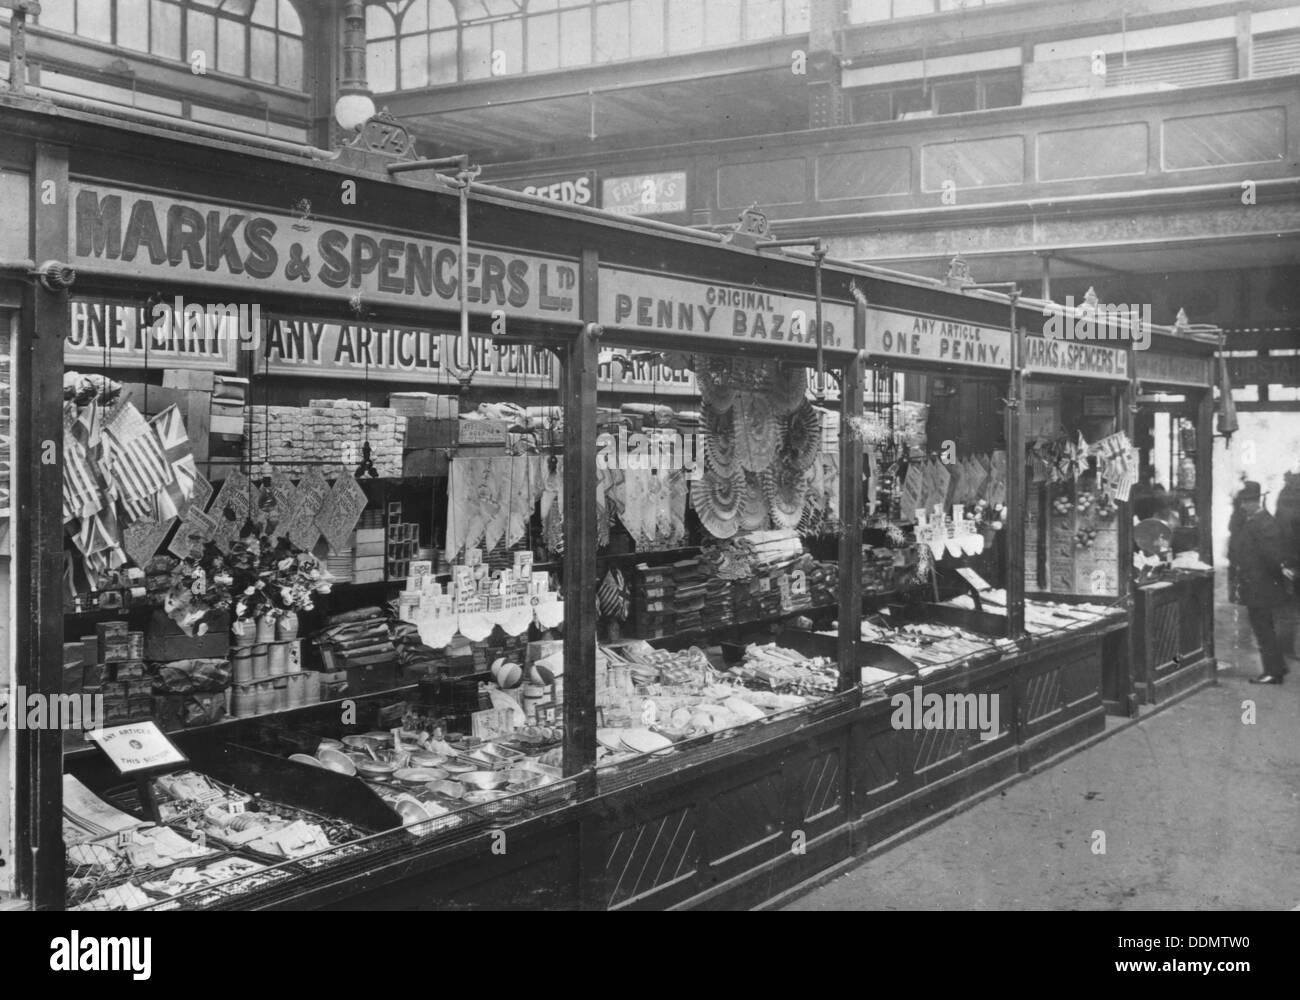 Marks & Spencer's stall in the covered market, Cardiff, 1901. - Stock Image